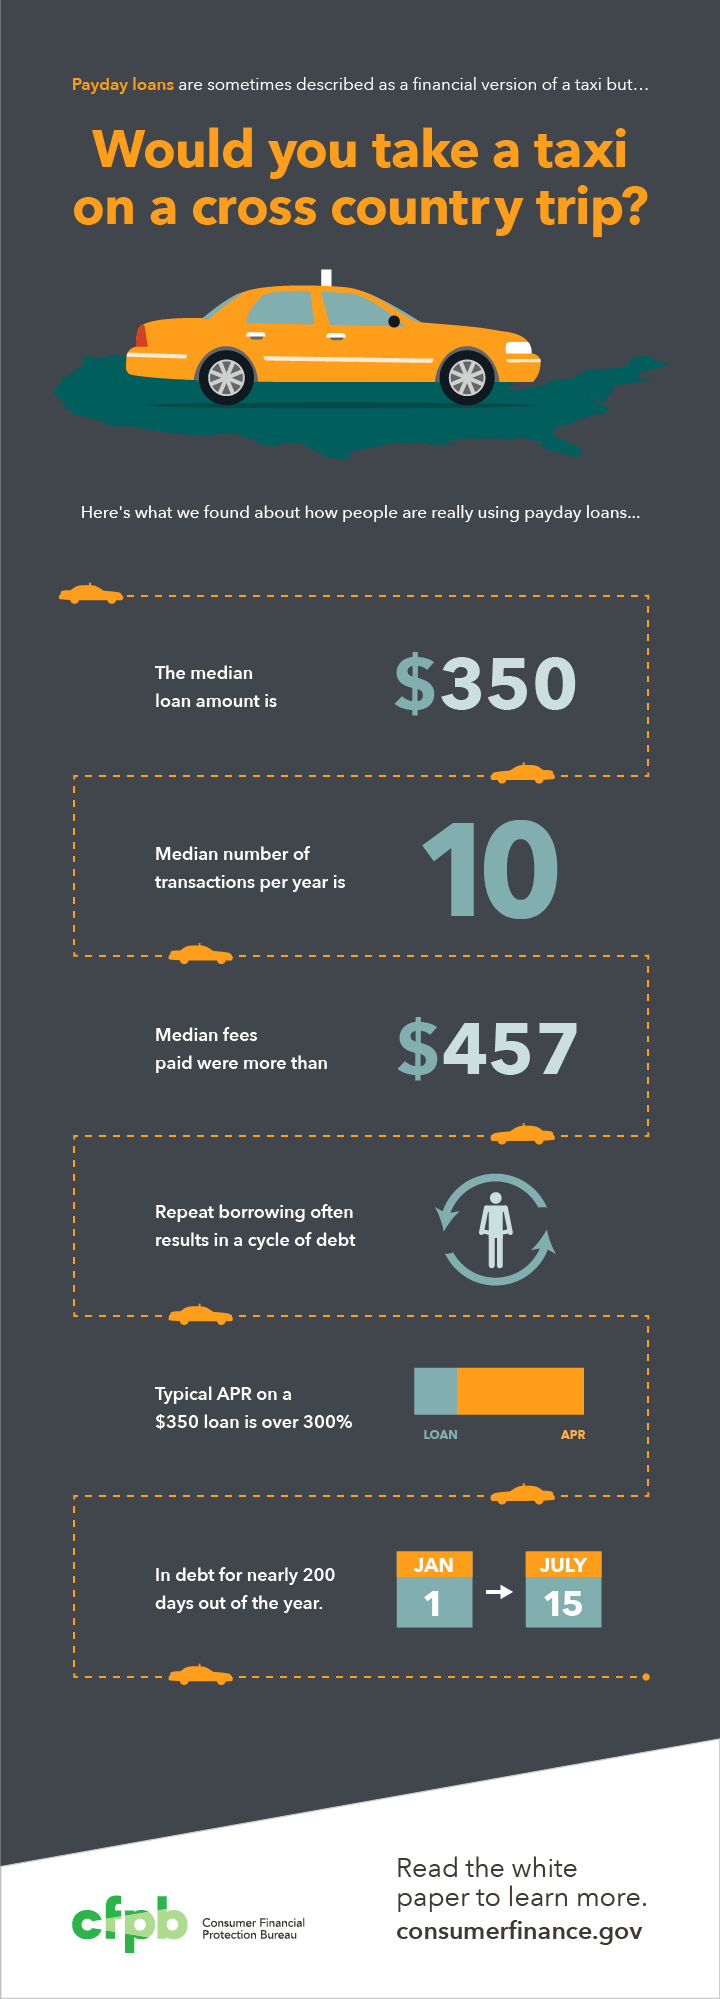 201304_cfpb_PaydayLoans_infographic1